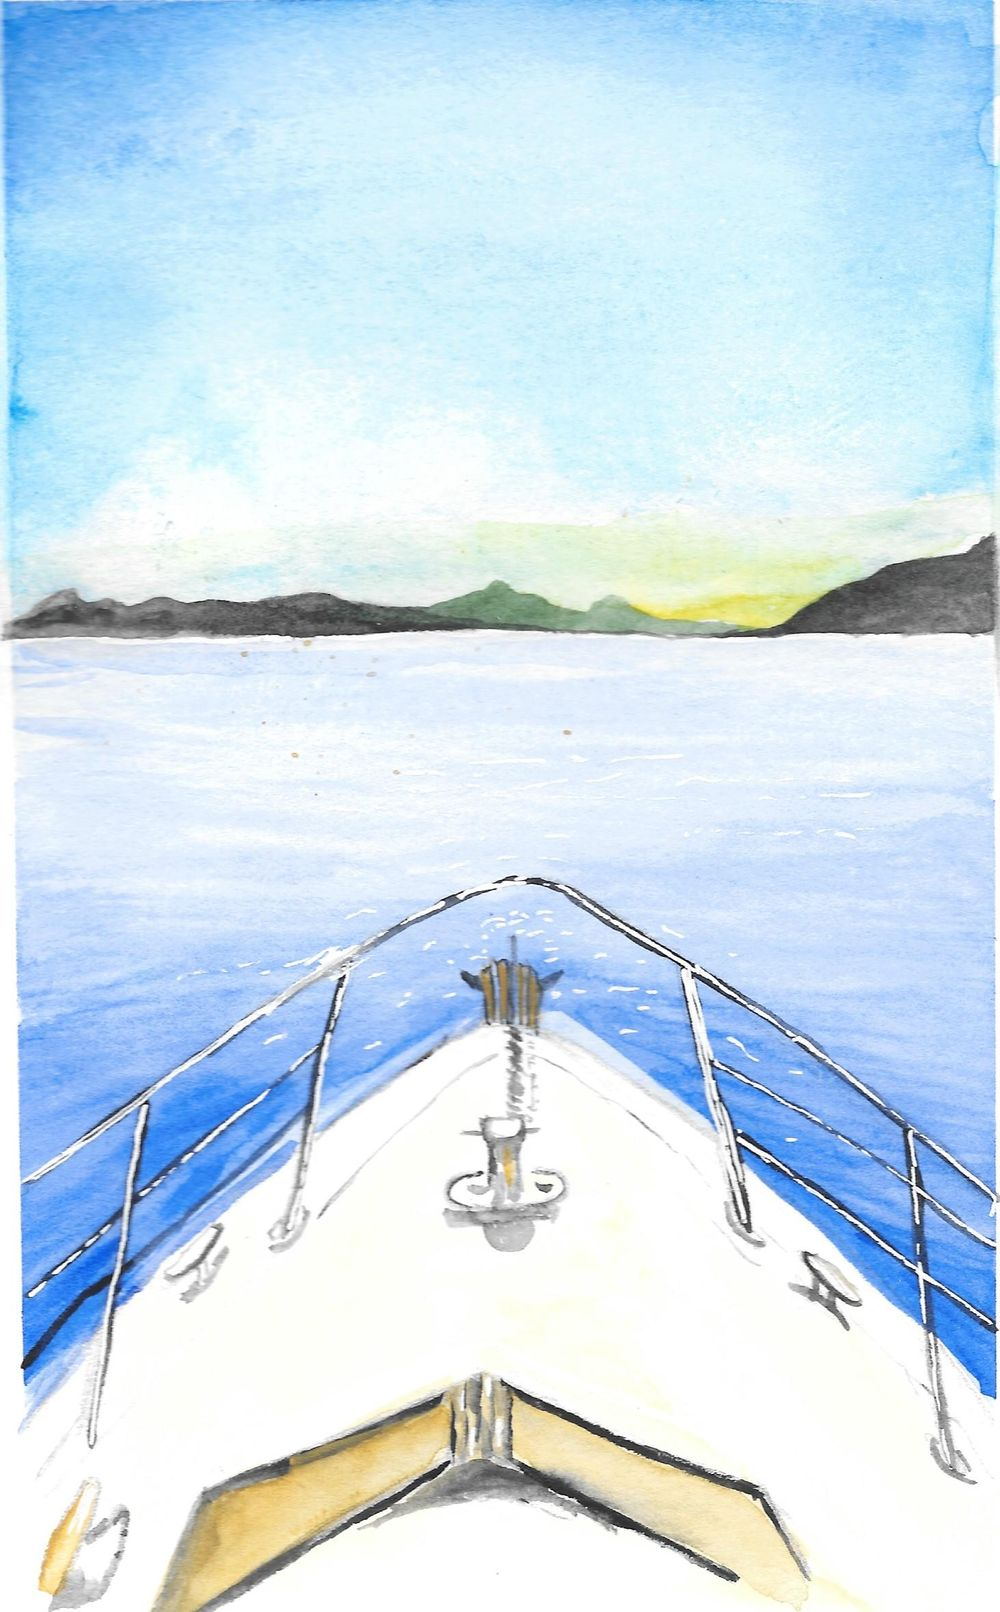 Watercolor Seascape & Boats - image 4 - student project